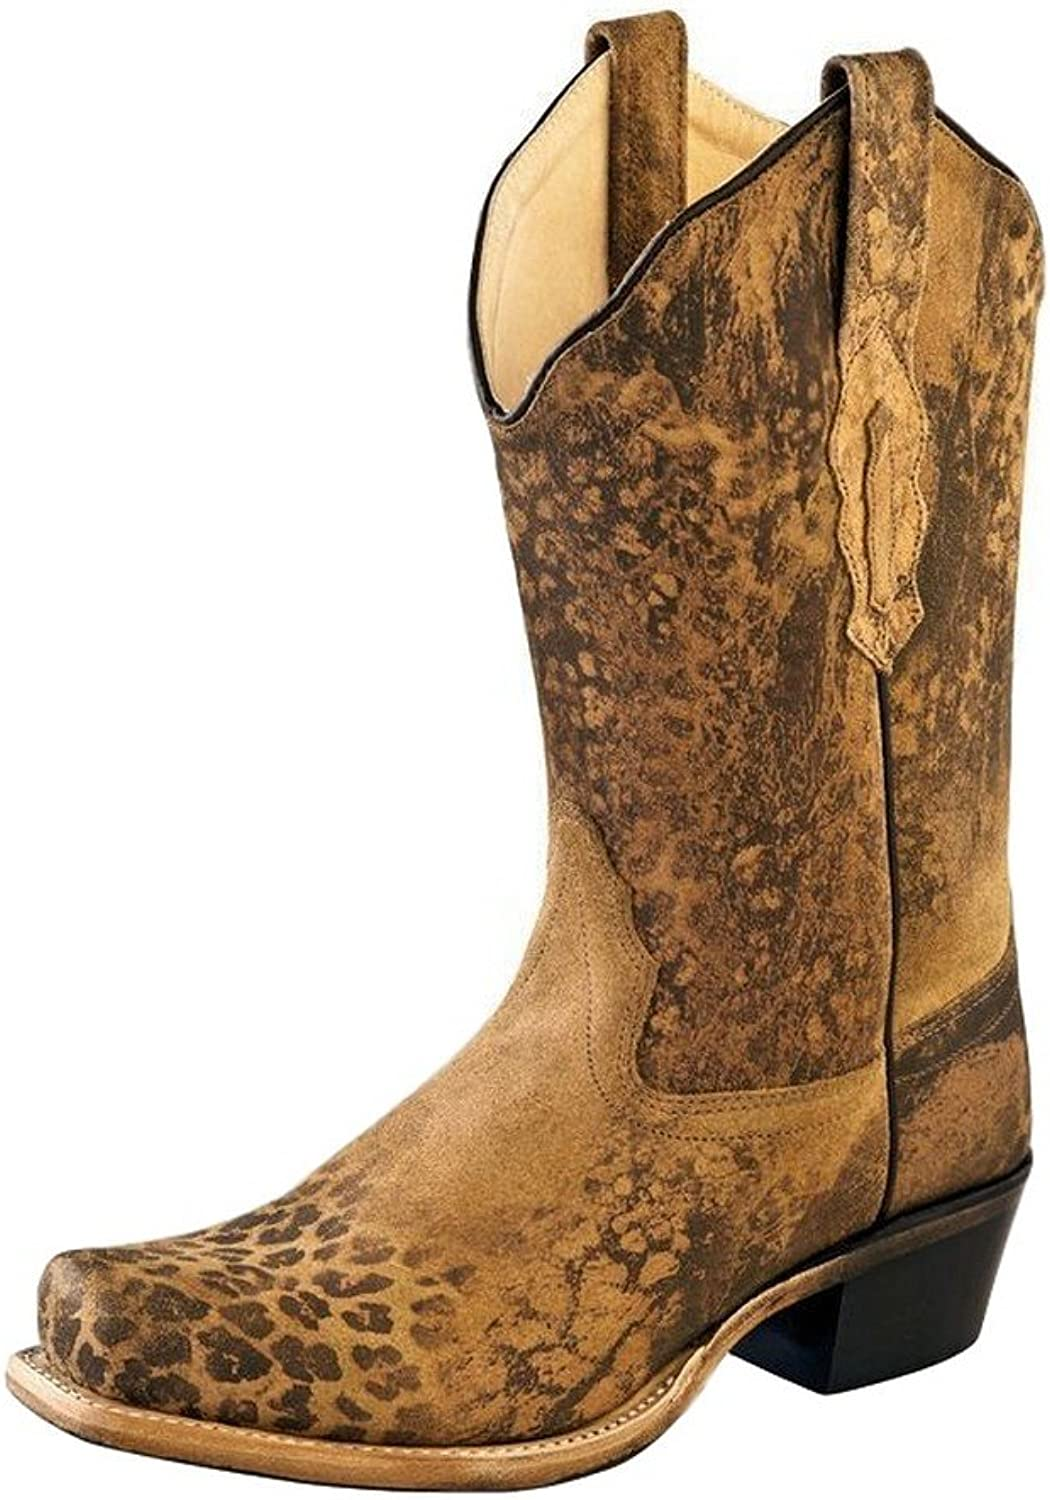 Old West Cowboy Boots Womens Leather Leopard Square 6.5 M Brown 18009